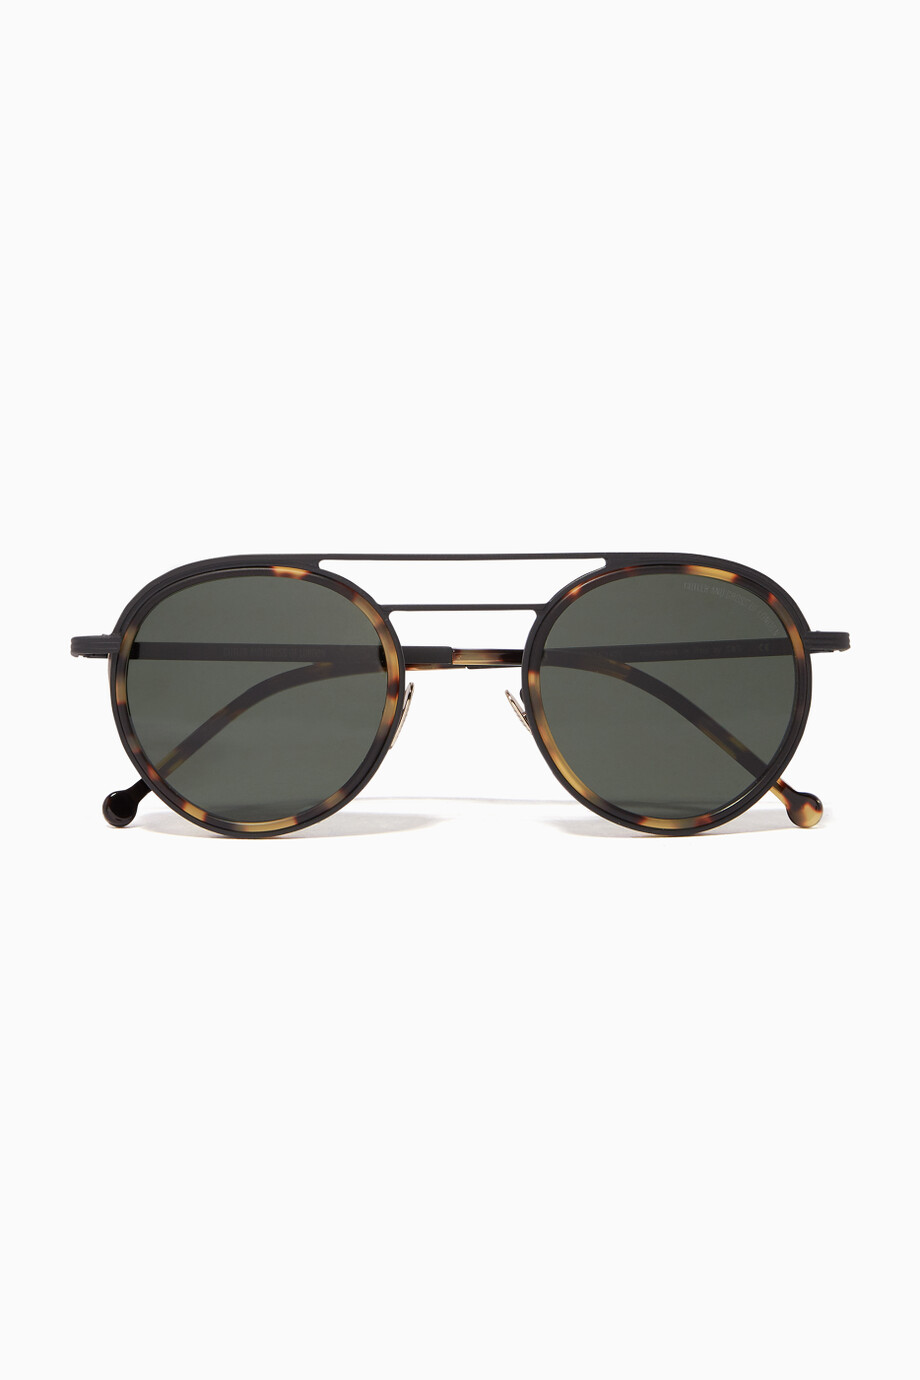 303c5ae836 Shop Cutler   Gross Brown Matte Black   Camo Round Double-Bridge Acetate    Metal Sunglasses for Men